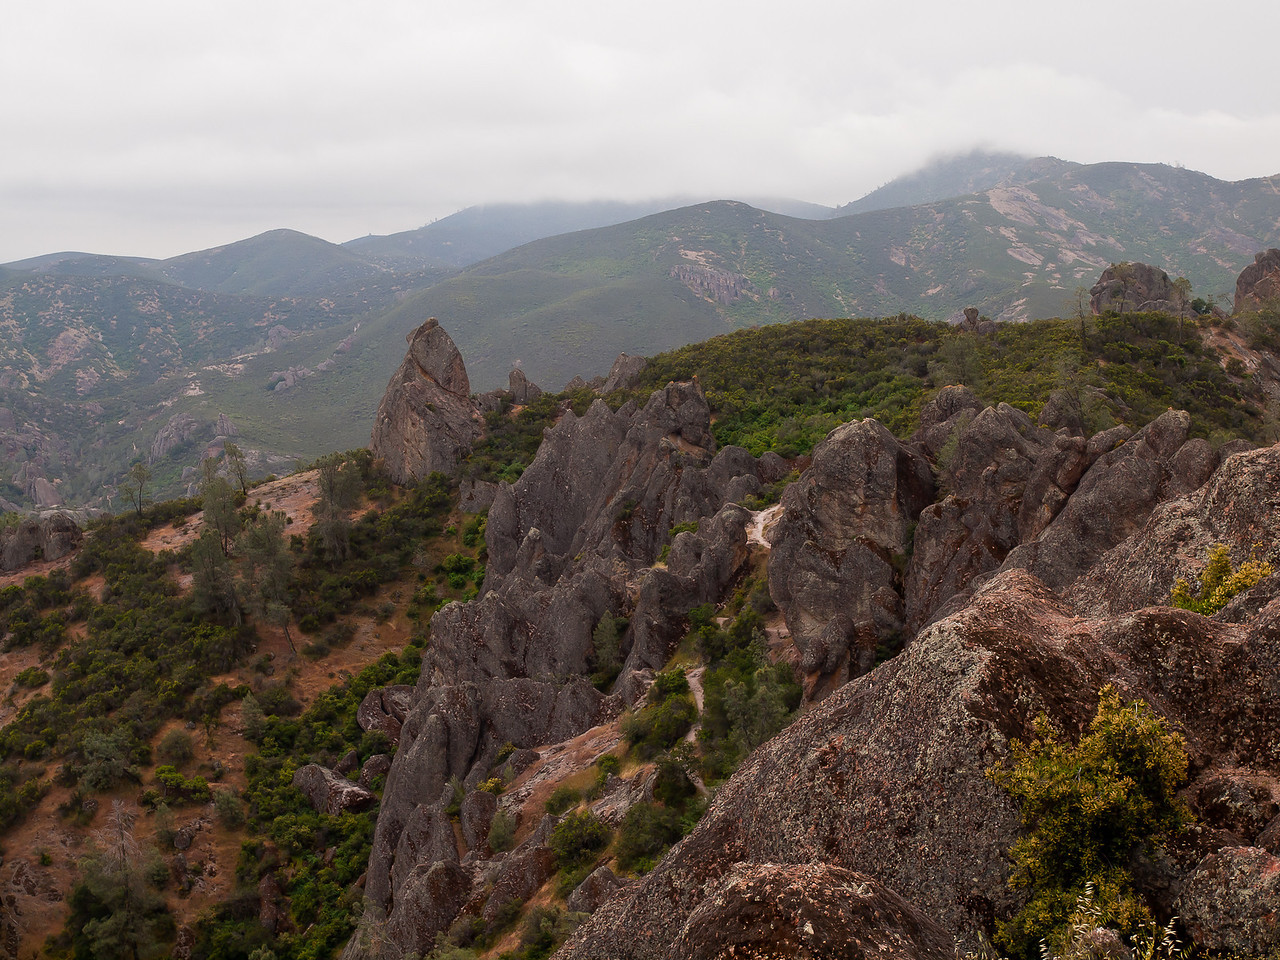 Low clouds obscure far peaks at Pinnacles National Monument.  It rained on us a little during this hike, but not enough to make it miserable.